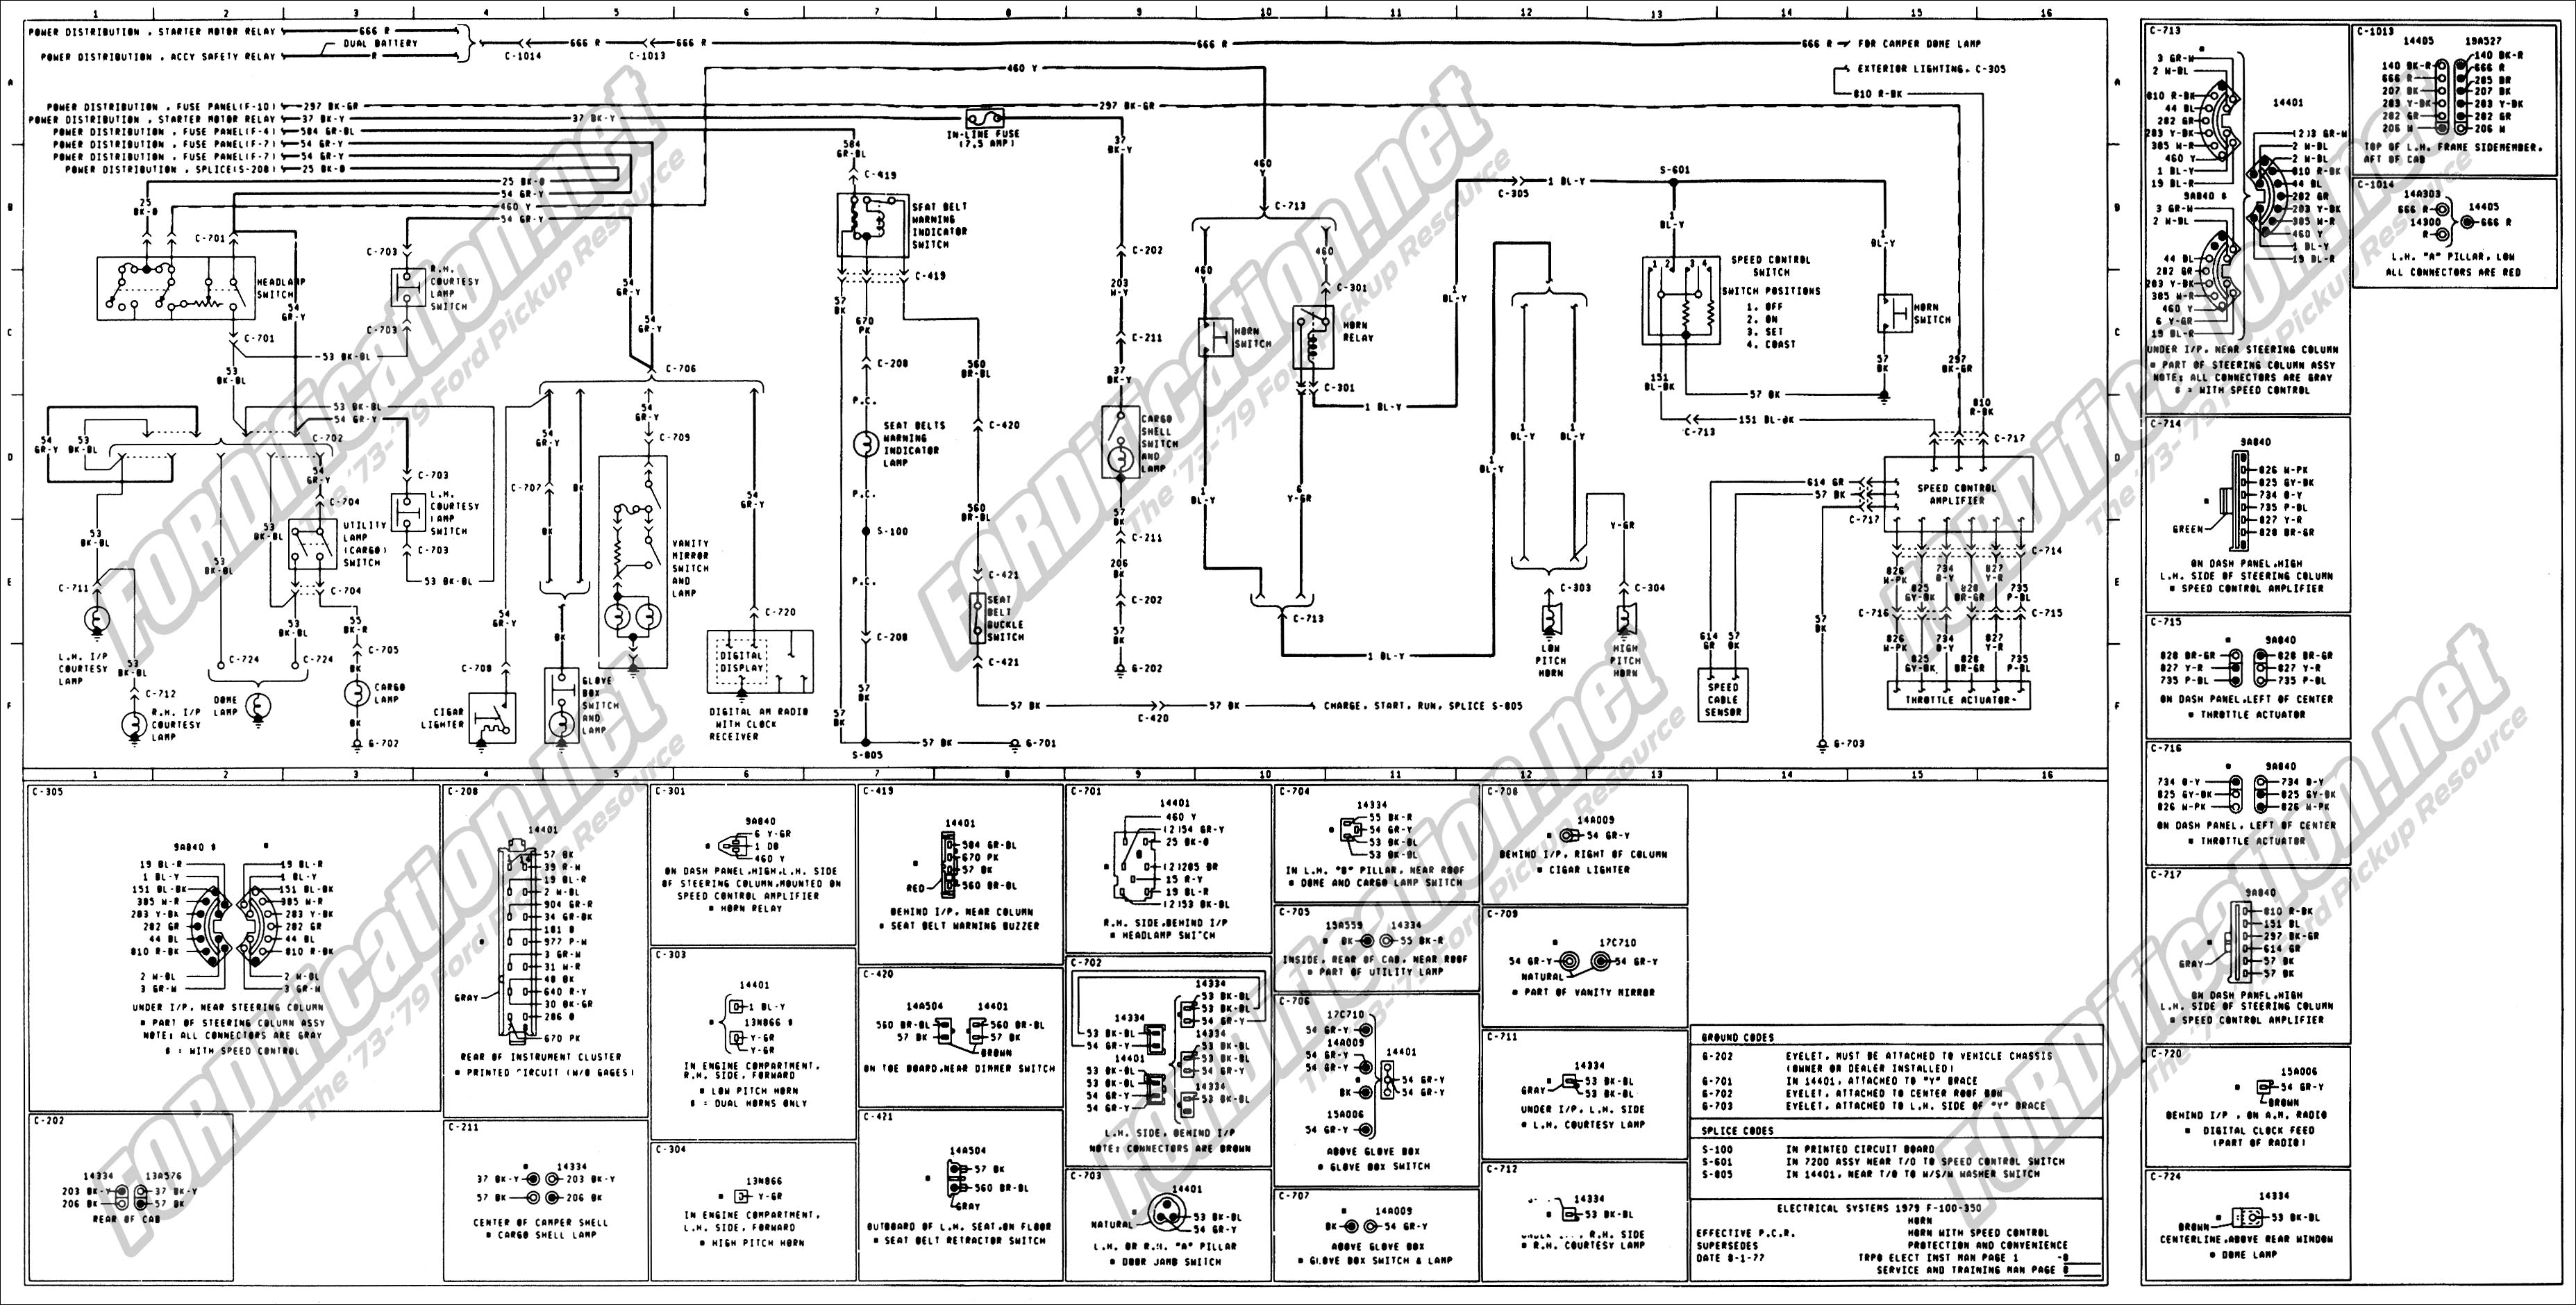 1978 Ford F250 Ignition Wiring Diagram Archive Of Automotive 2001 Chevy Cavalier Coil Wire 1973 1979 Truck Diagrams Schematics Fordification Net Rh